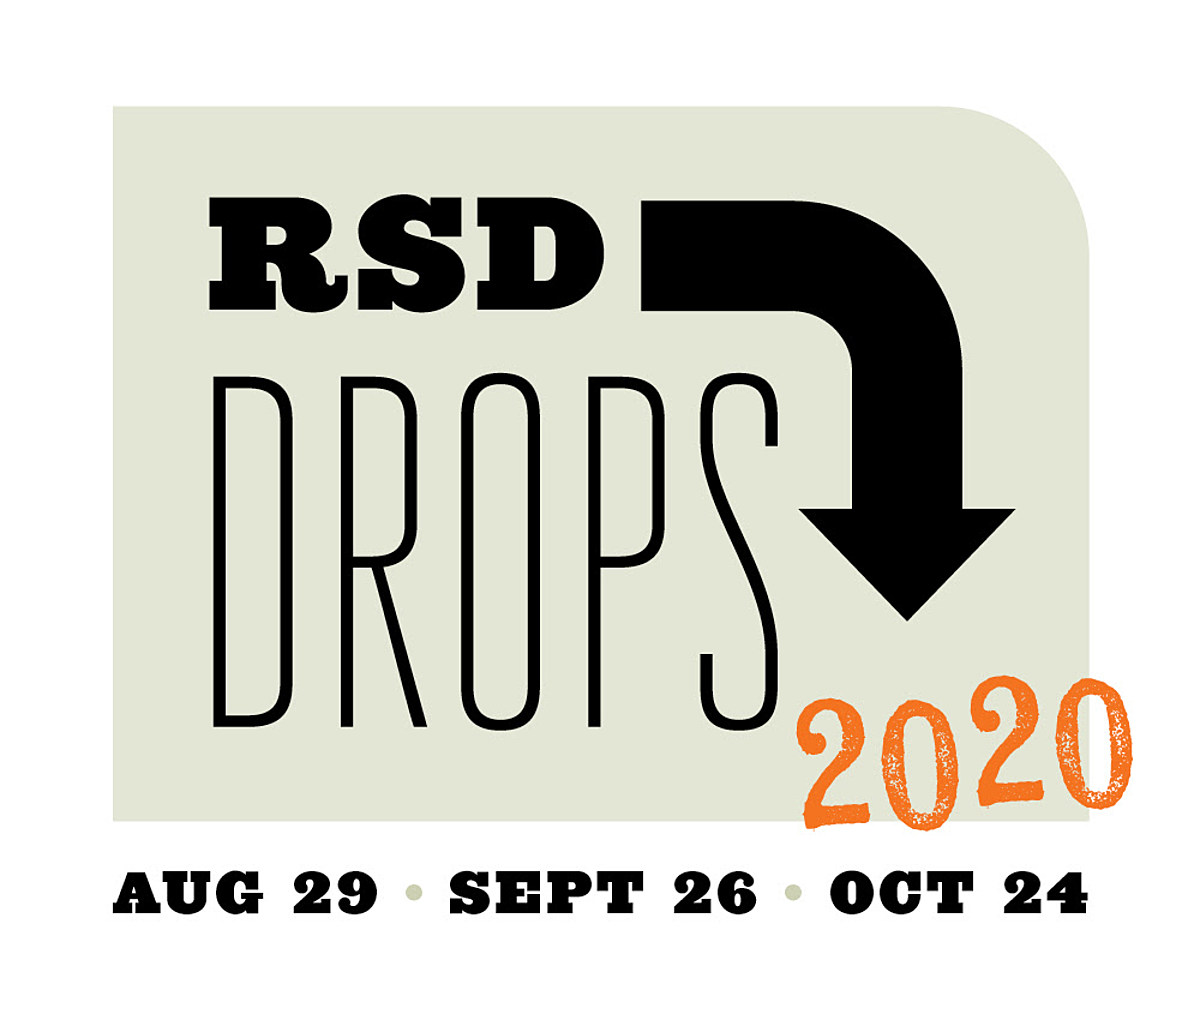 Record Store Day 2020 postponed again, is now 3 events in August, September  & October